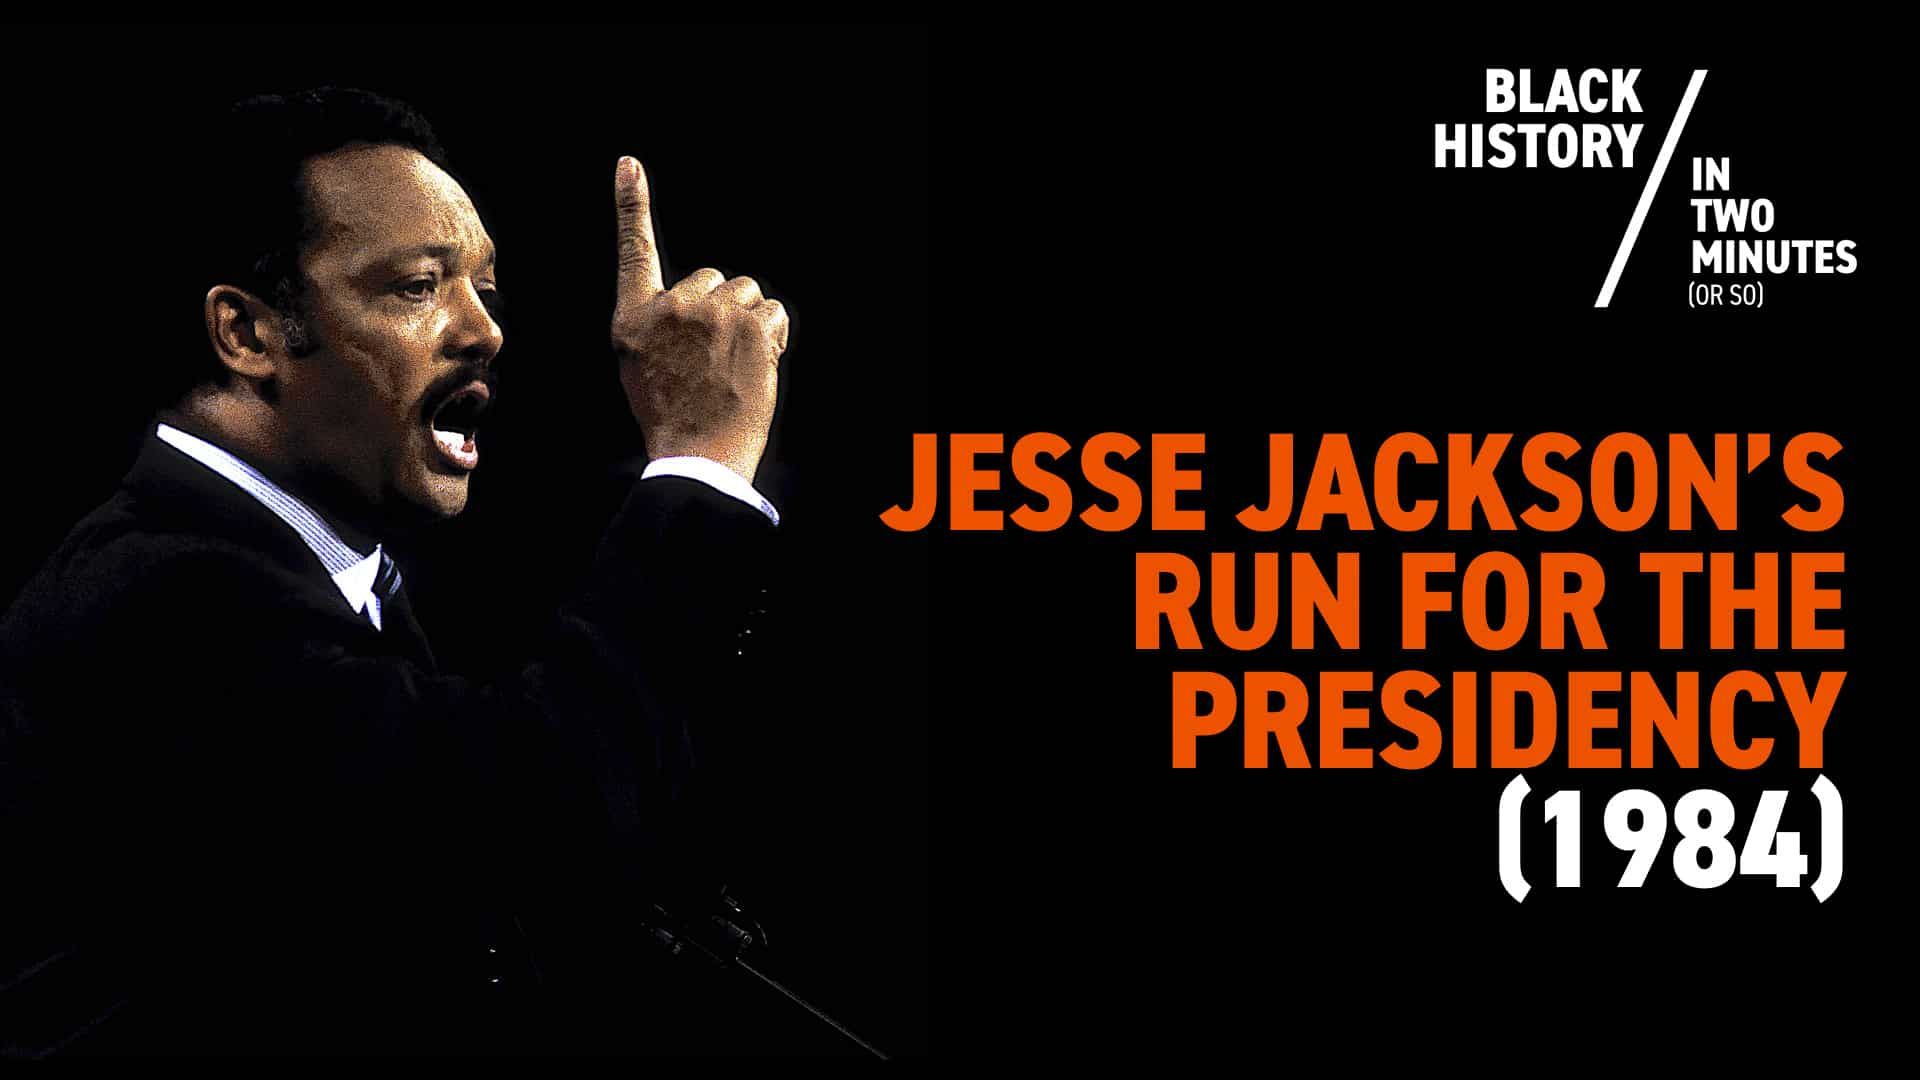 Jesse Jackson's Run For Presidency | Black History in Two Minutes